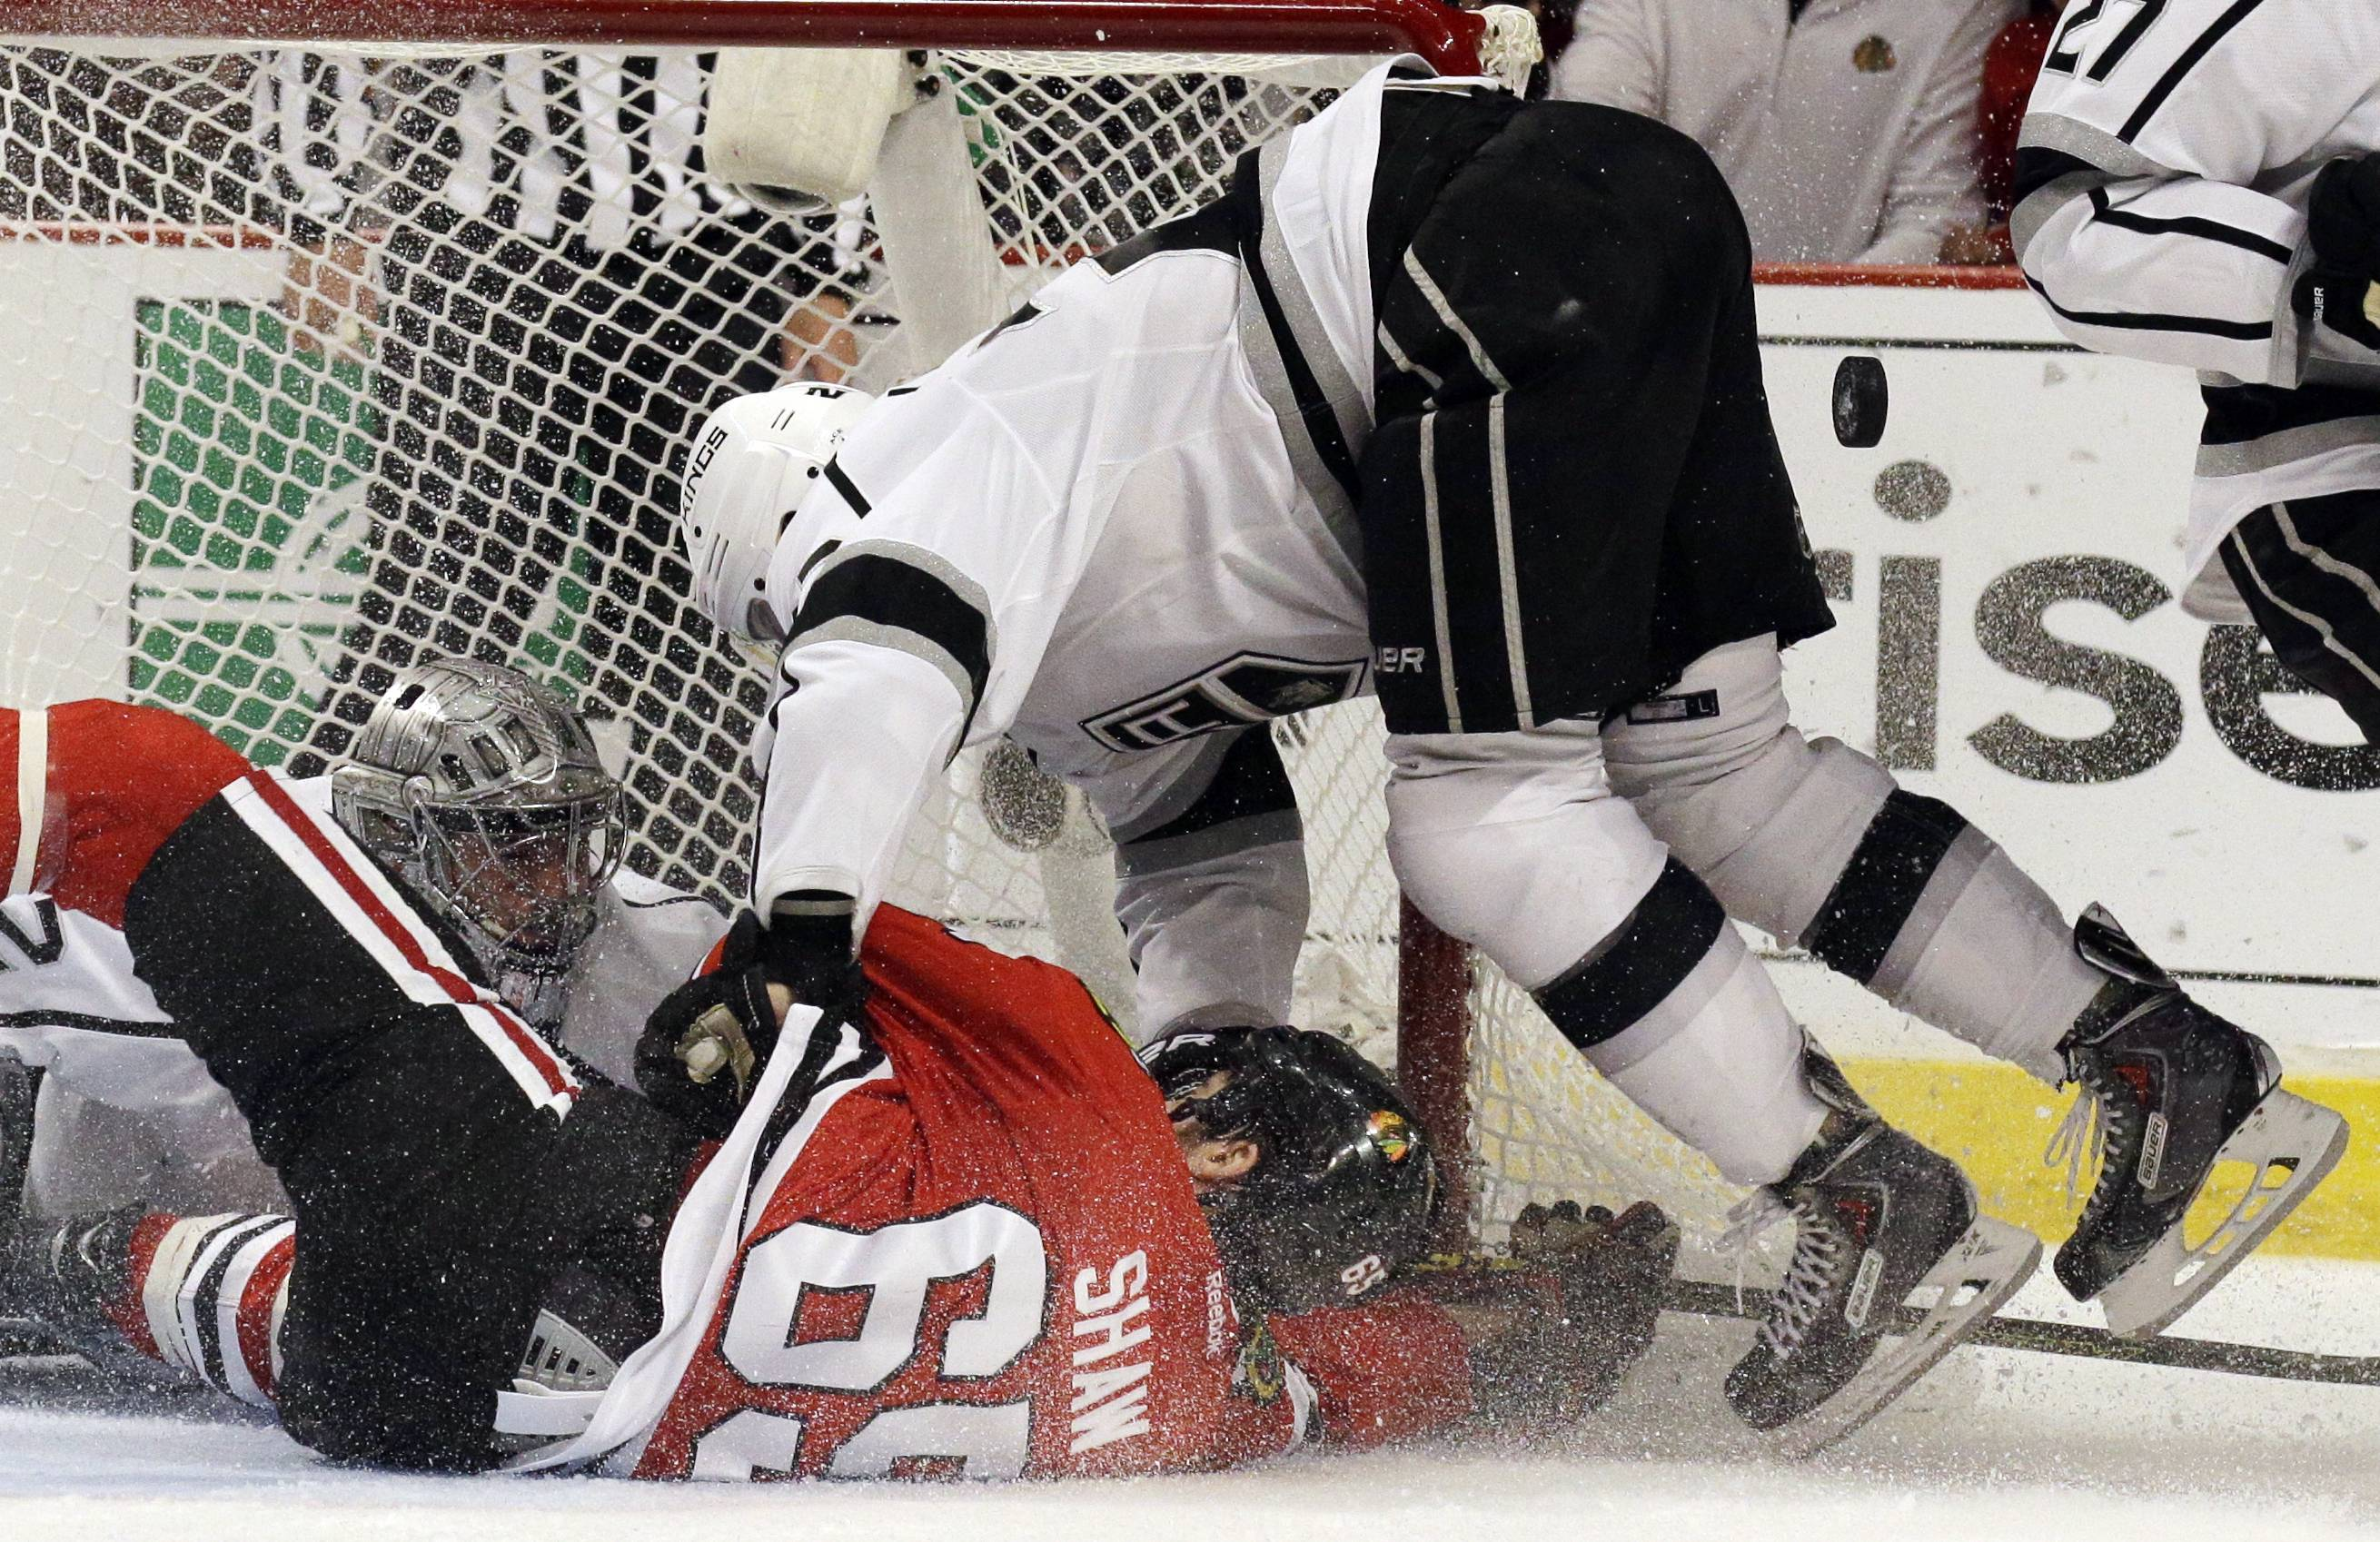 Blackhawks center Andrew Shaw (65) and Los Angeles Kings center Trevor Lewis (22) collide as Los Angeles Kings goalie Jonathan Quick (32) saves a goal  during the second period in Game 7 of the Western Conference finals in the NHL hockey Stanley Cup playoffs Sunday, June 1, 2014, in Chicago.